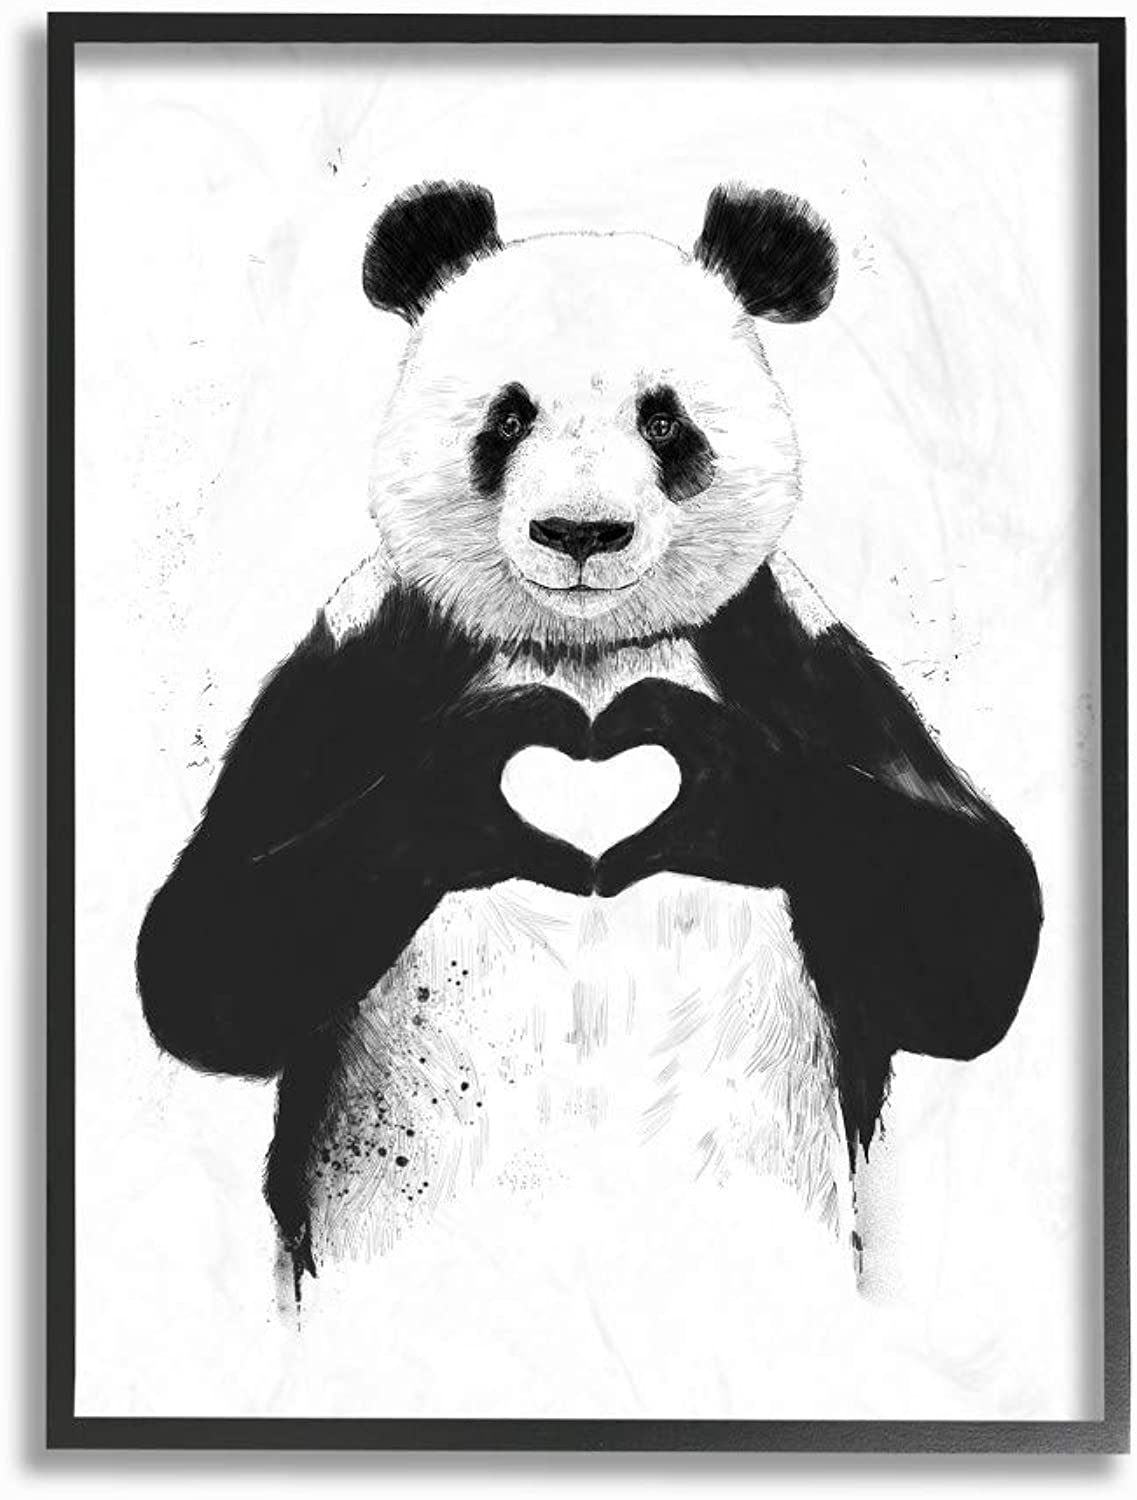 The Stupell Home Decor Collection Panda Bear Making A Heart Ink Framed Giclee Art, 16x20, Multicolor